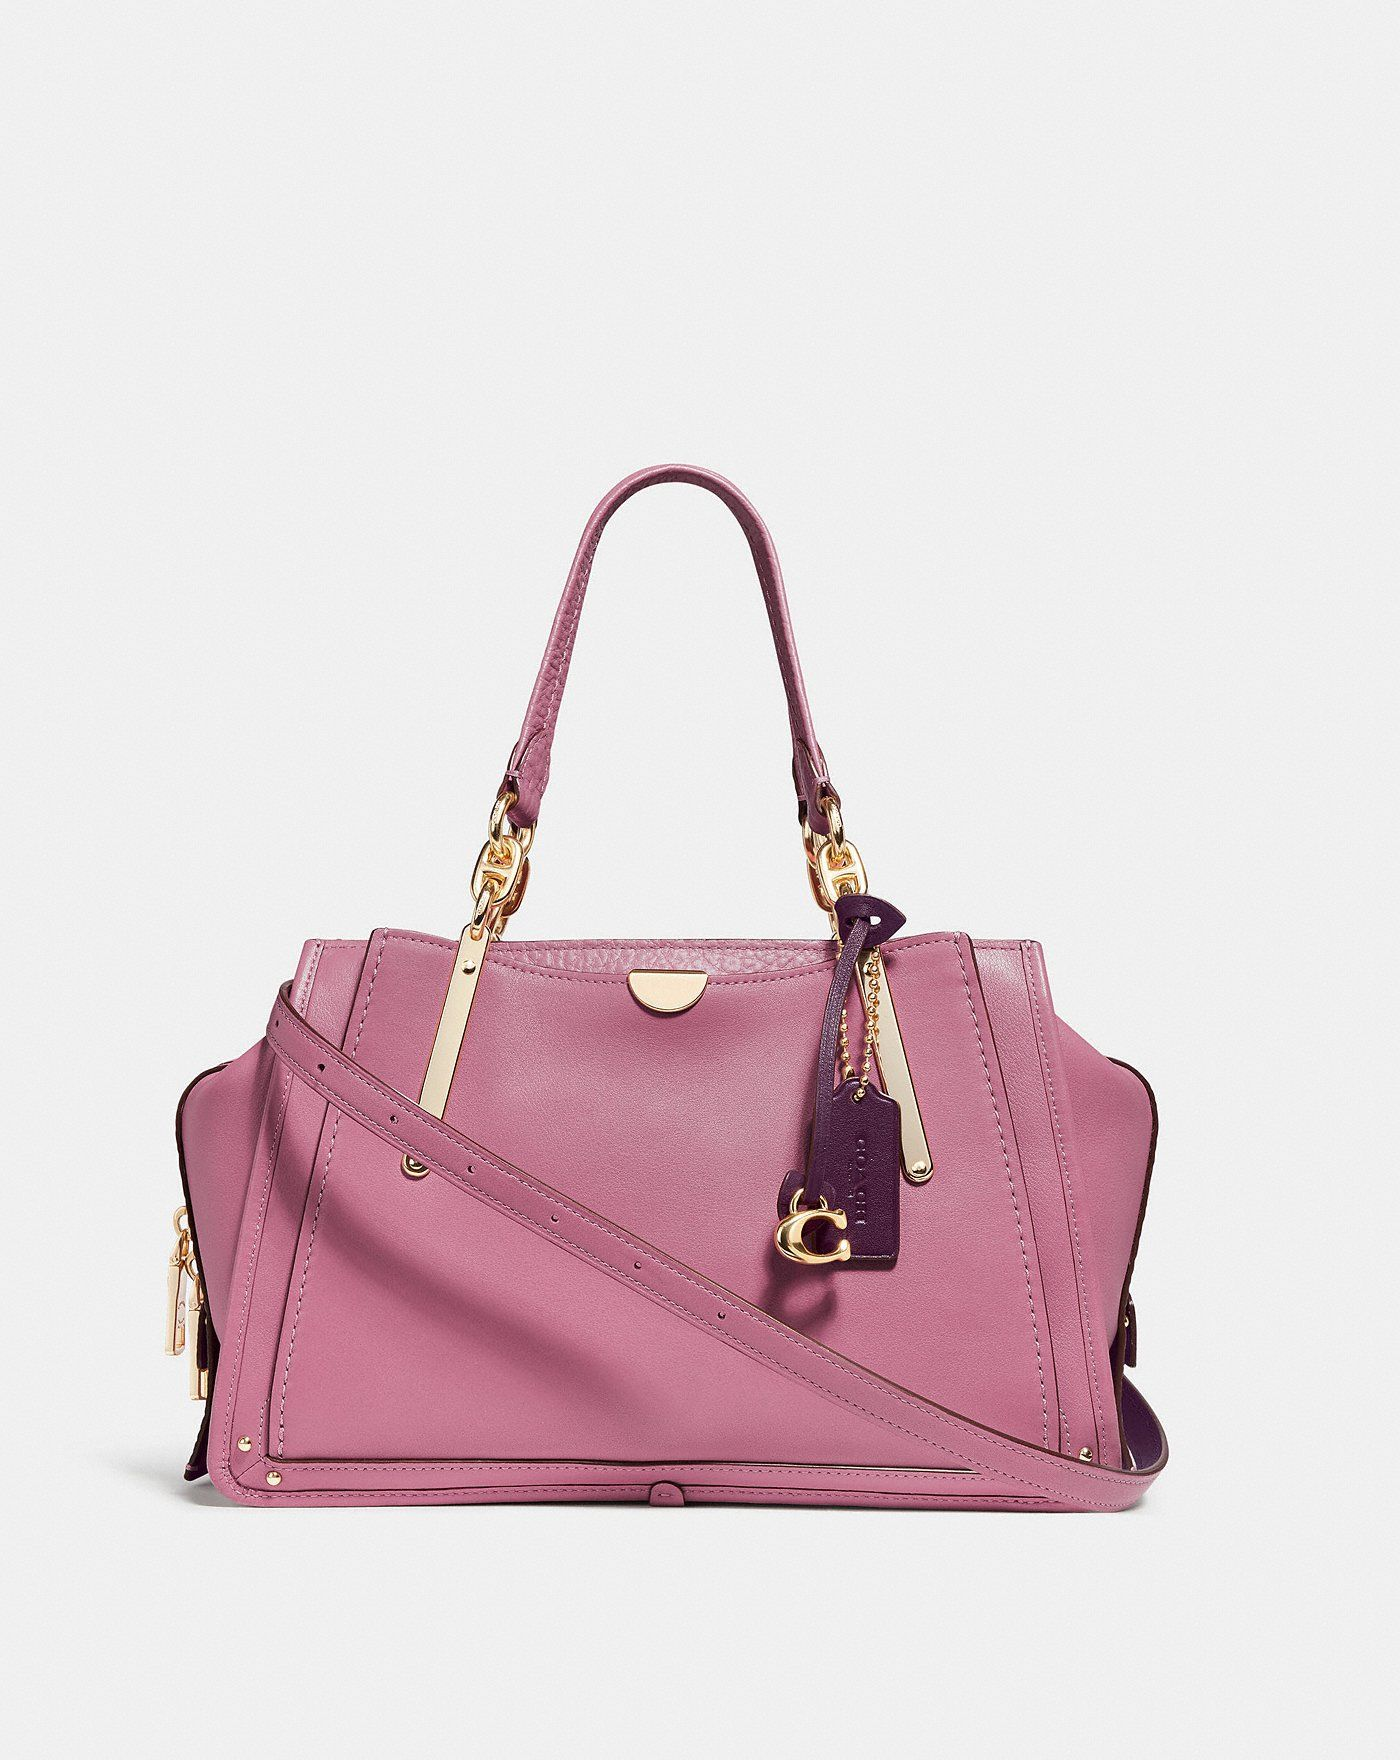 shop-coach-dreamer-bag-in-rose-leather